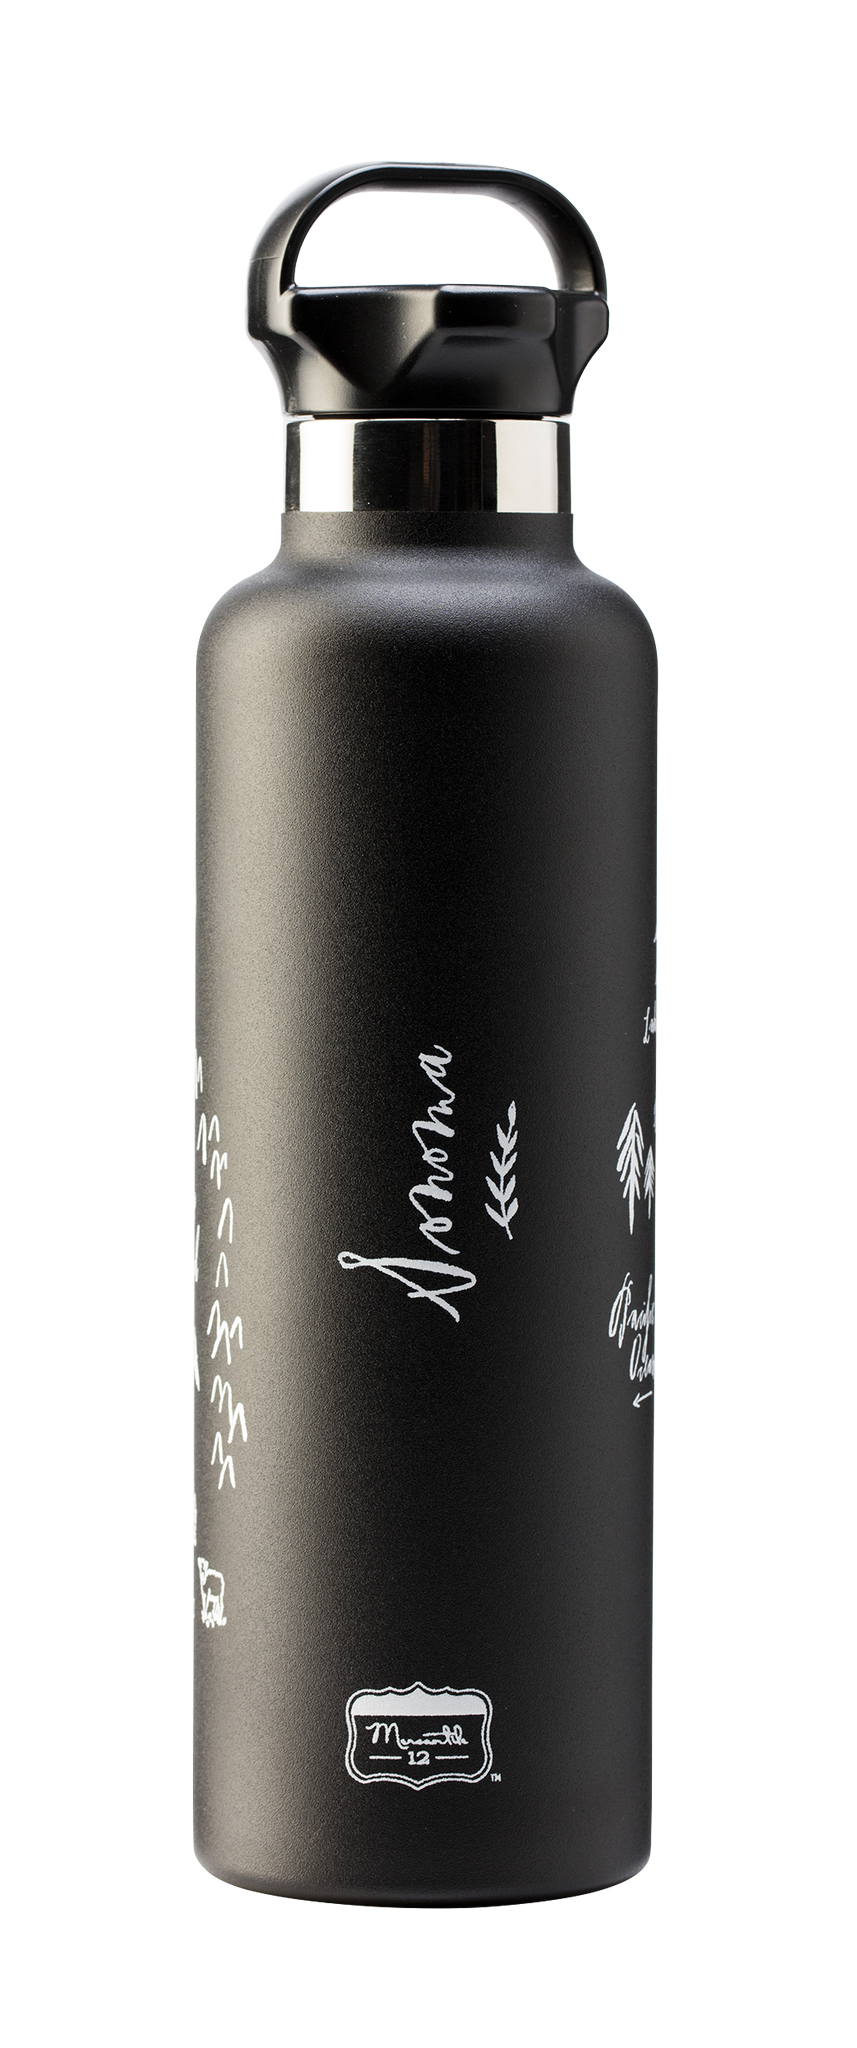 Calligraphy Map Sonoma Stainless Steel Water Bottle